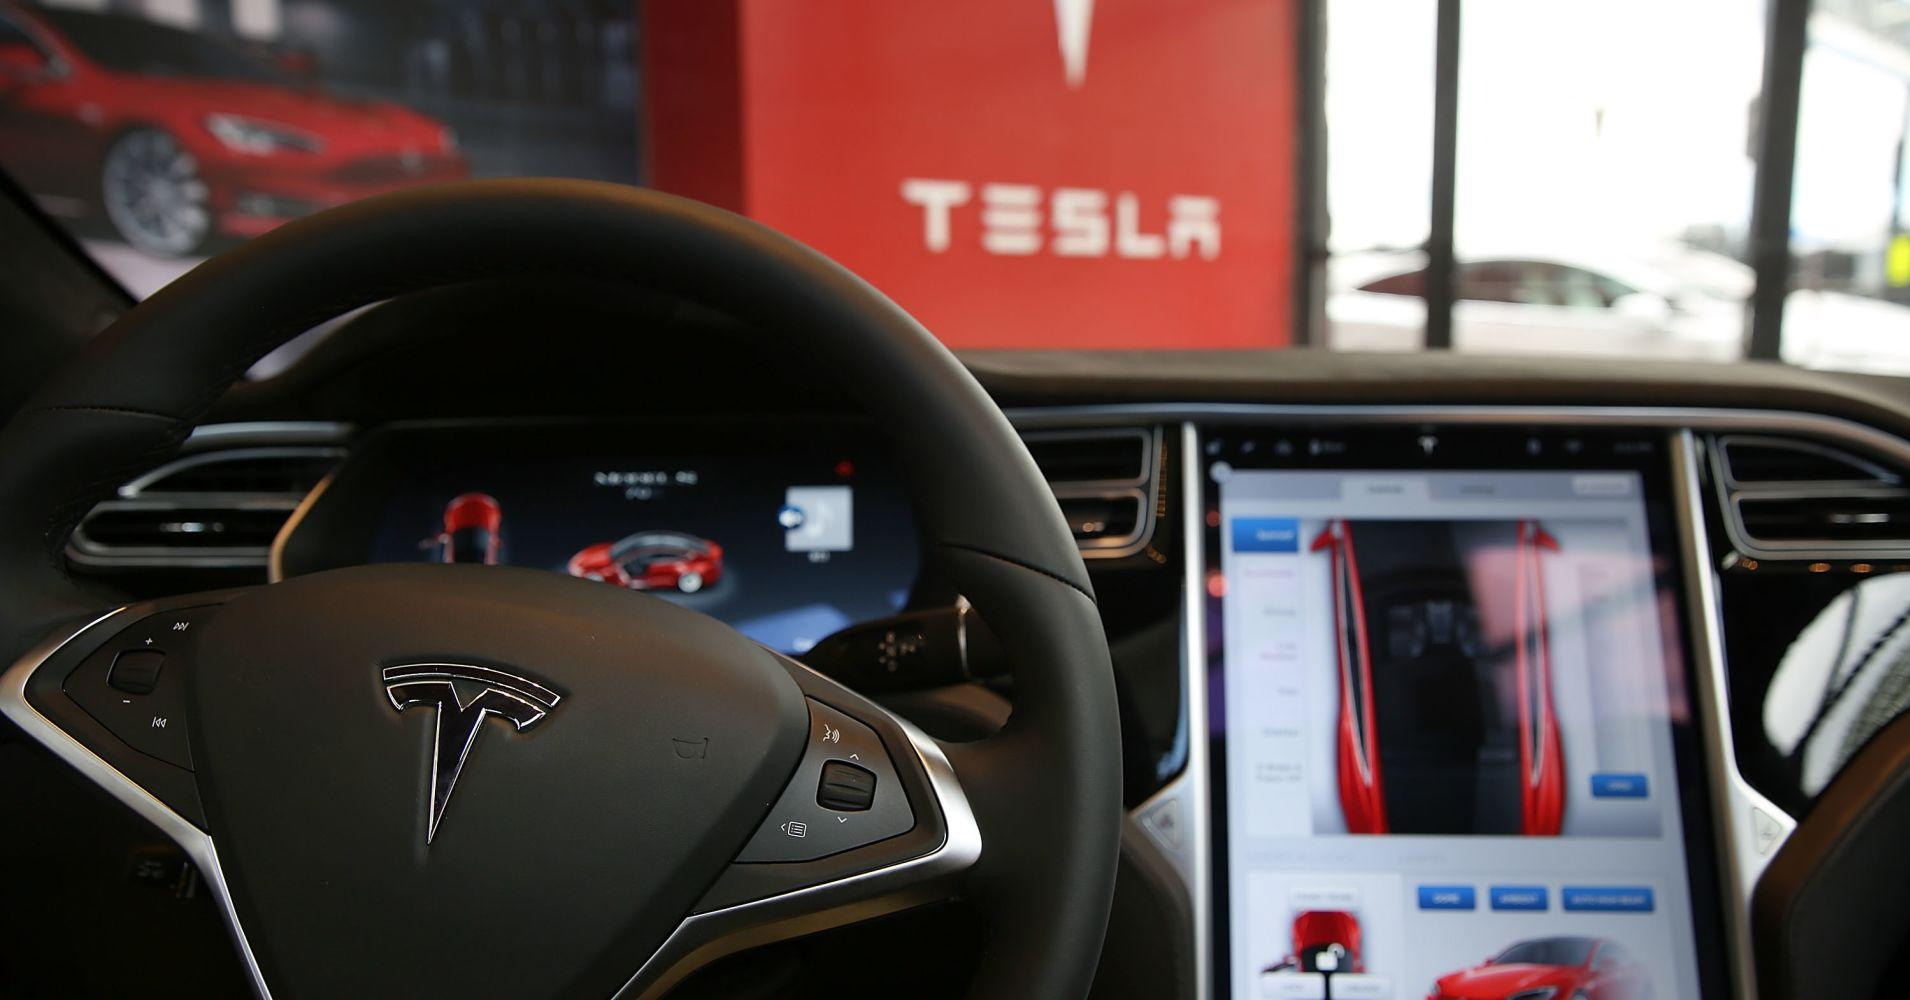 US traffic agency says 'no defect' at time of Tesla's fatal crash, Musk says report 'very positive'